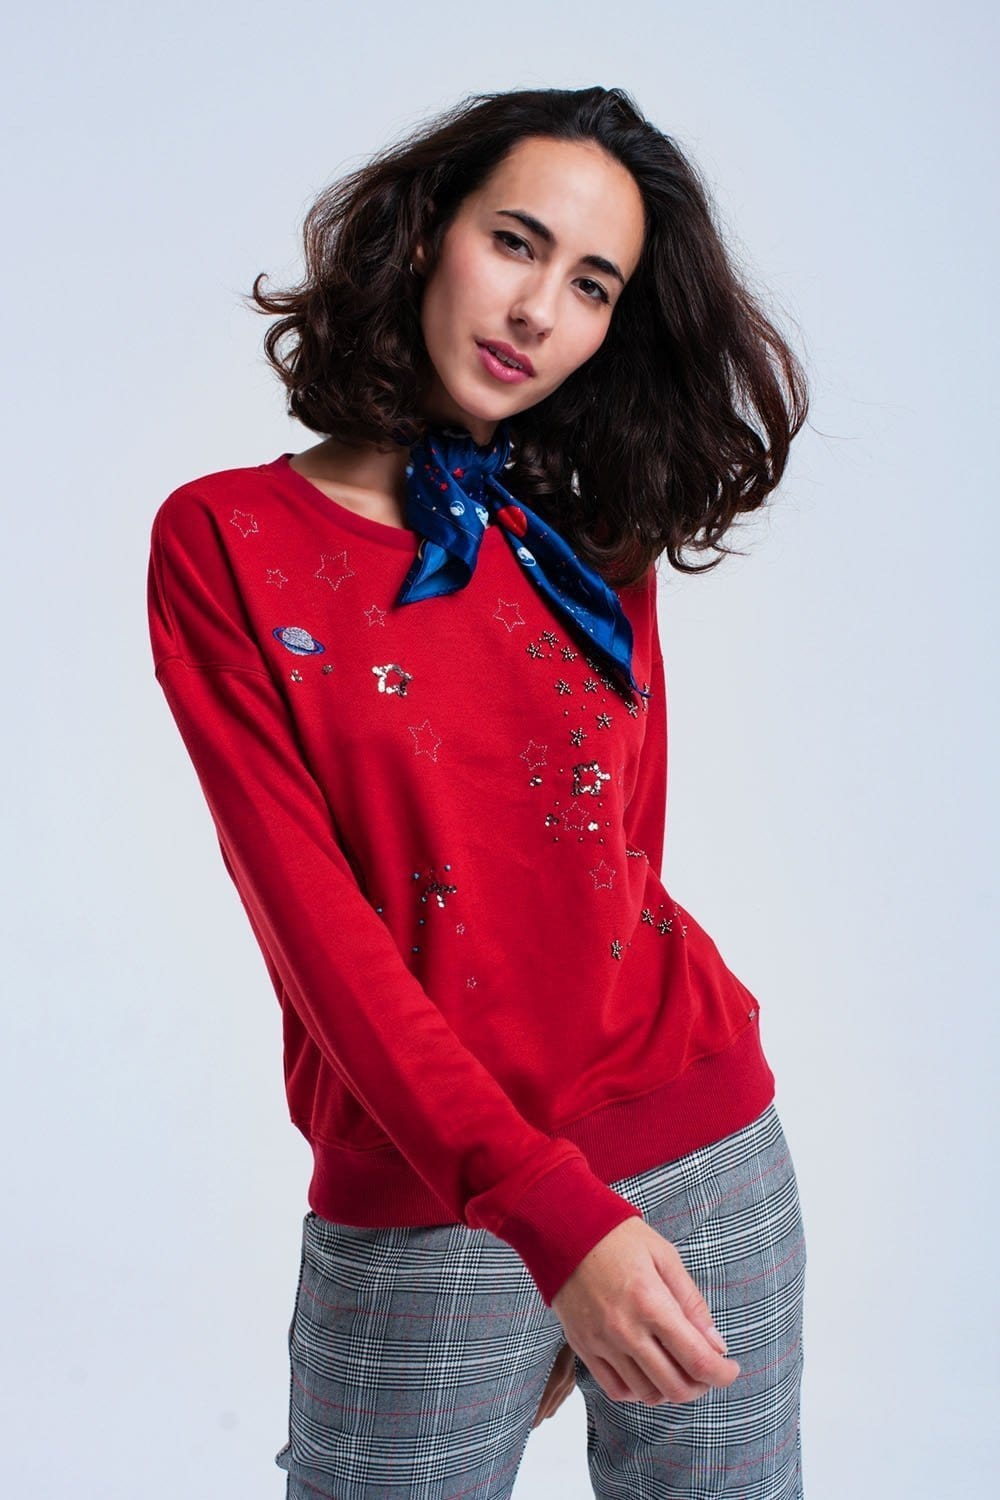 Red sweatshirt with beads - Himelhoch's